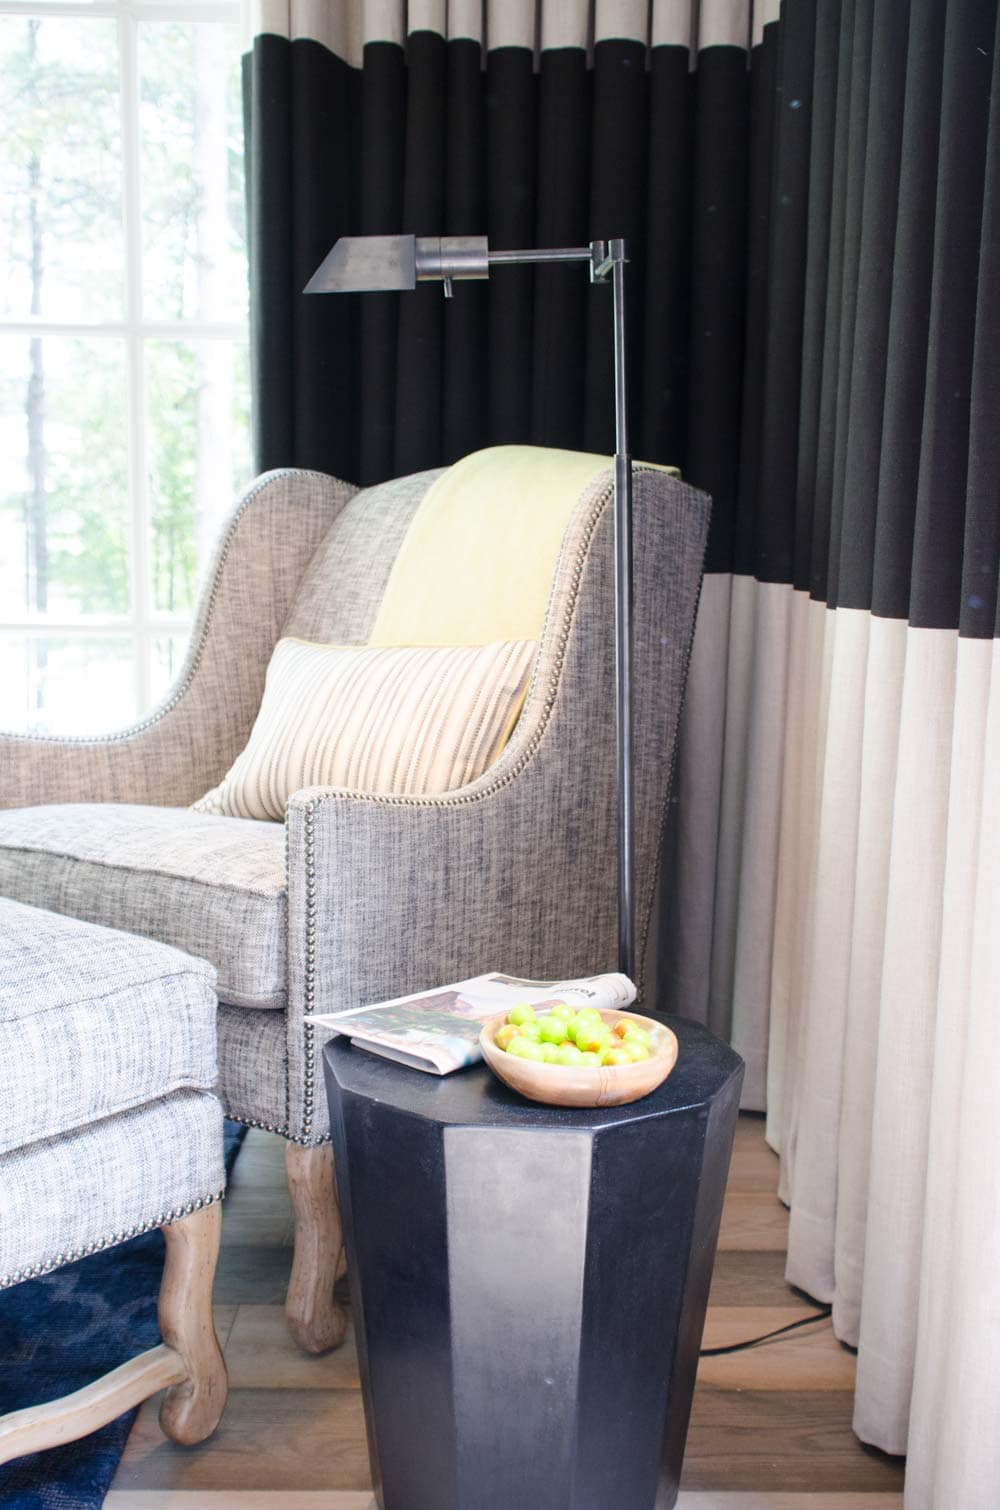 Bedroom corner with floor-to-ceiling curtains with wide black stripe